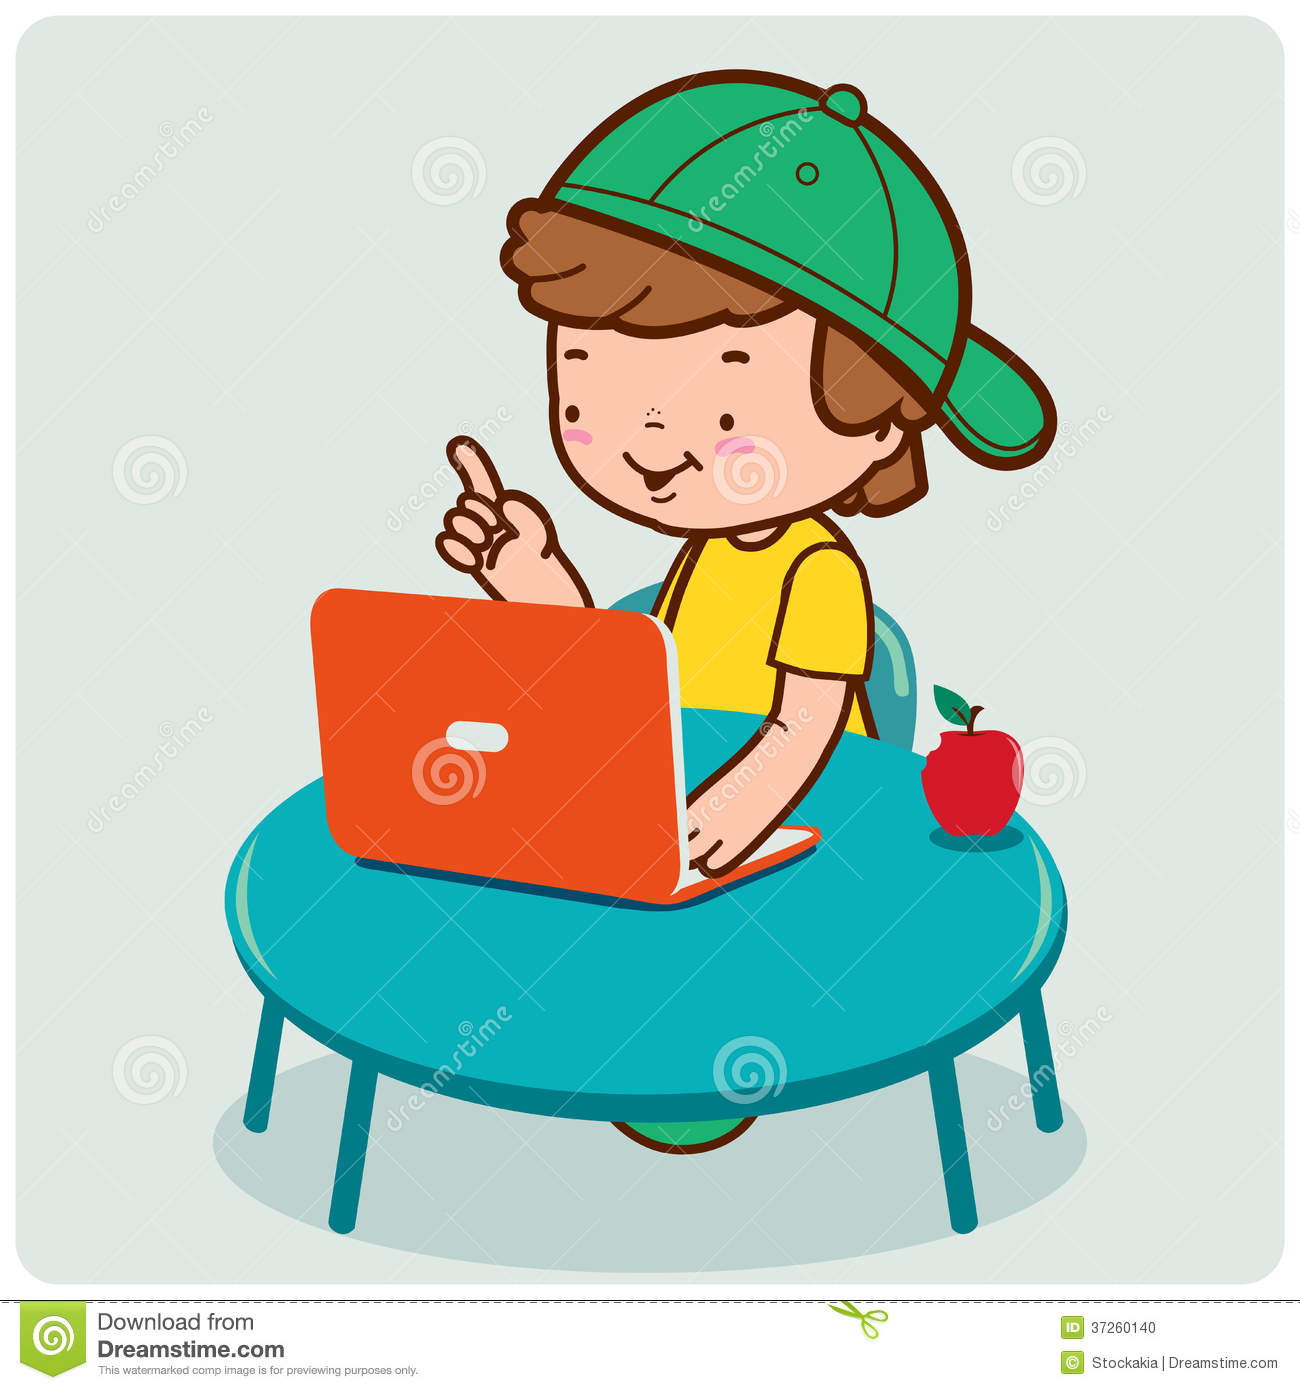 Code clipart computer maintenance Boy Using Students The Stock